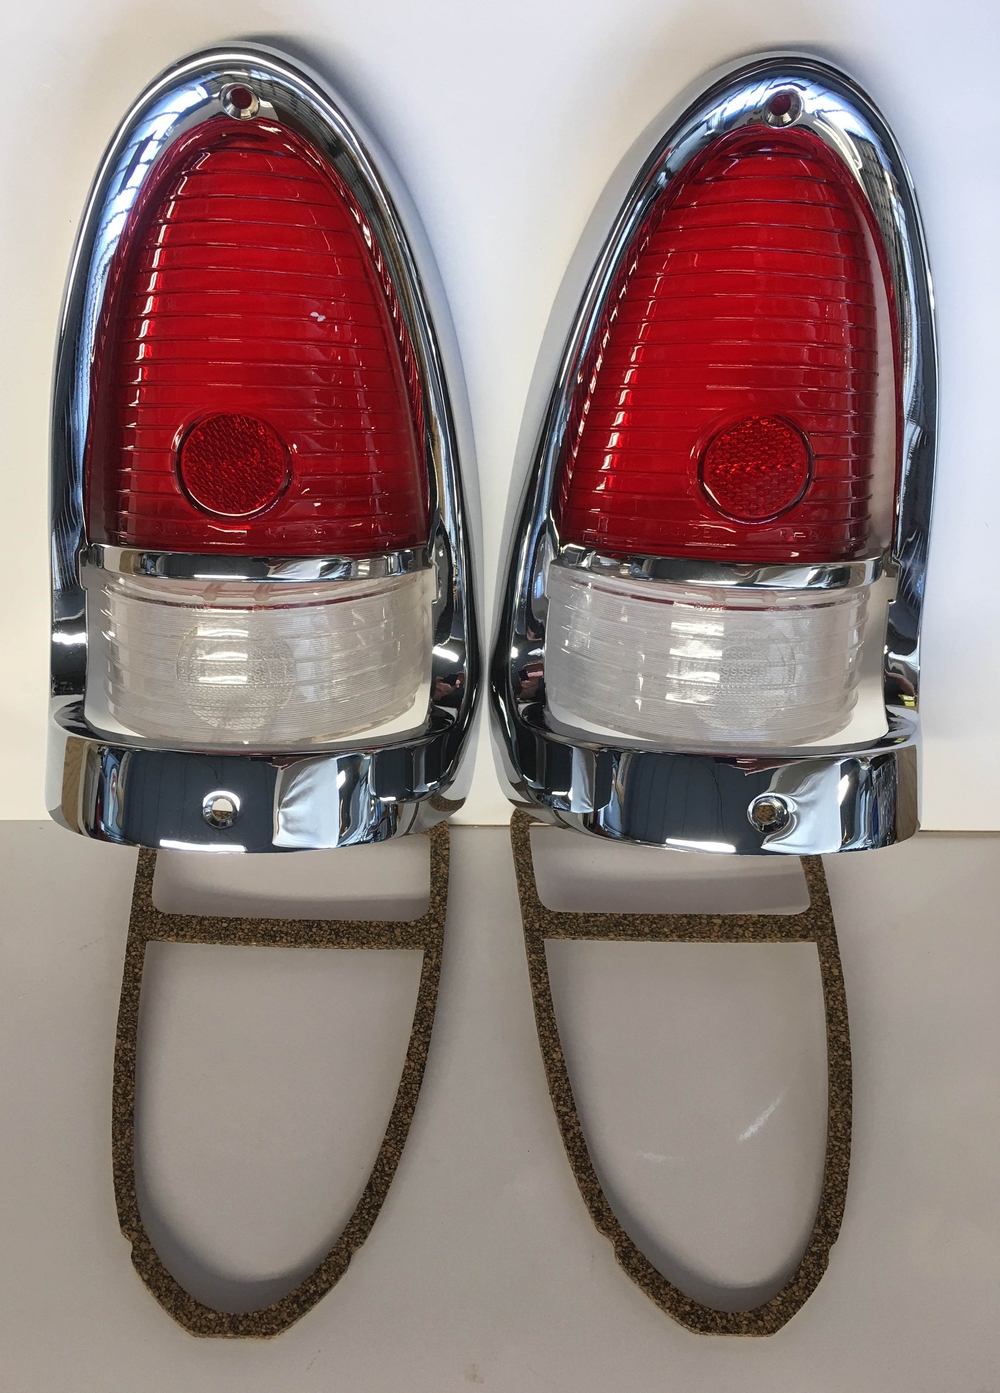 1955 Chevrolet Red LED Tail light Lens and Bezel Housing - 12 Pieces